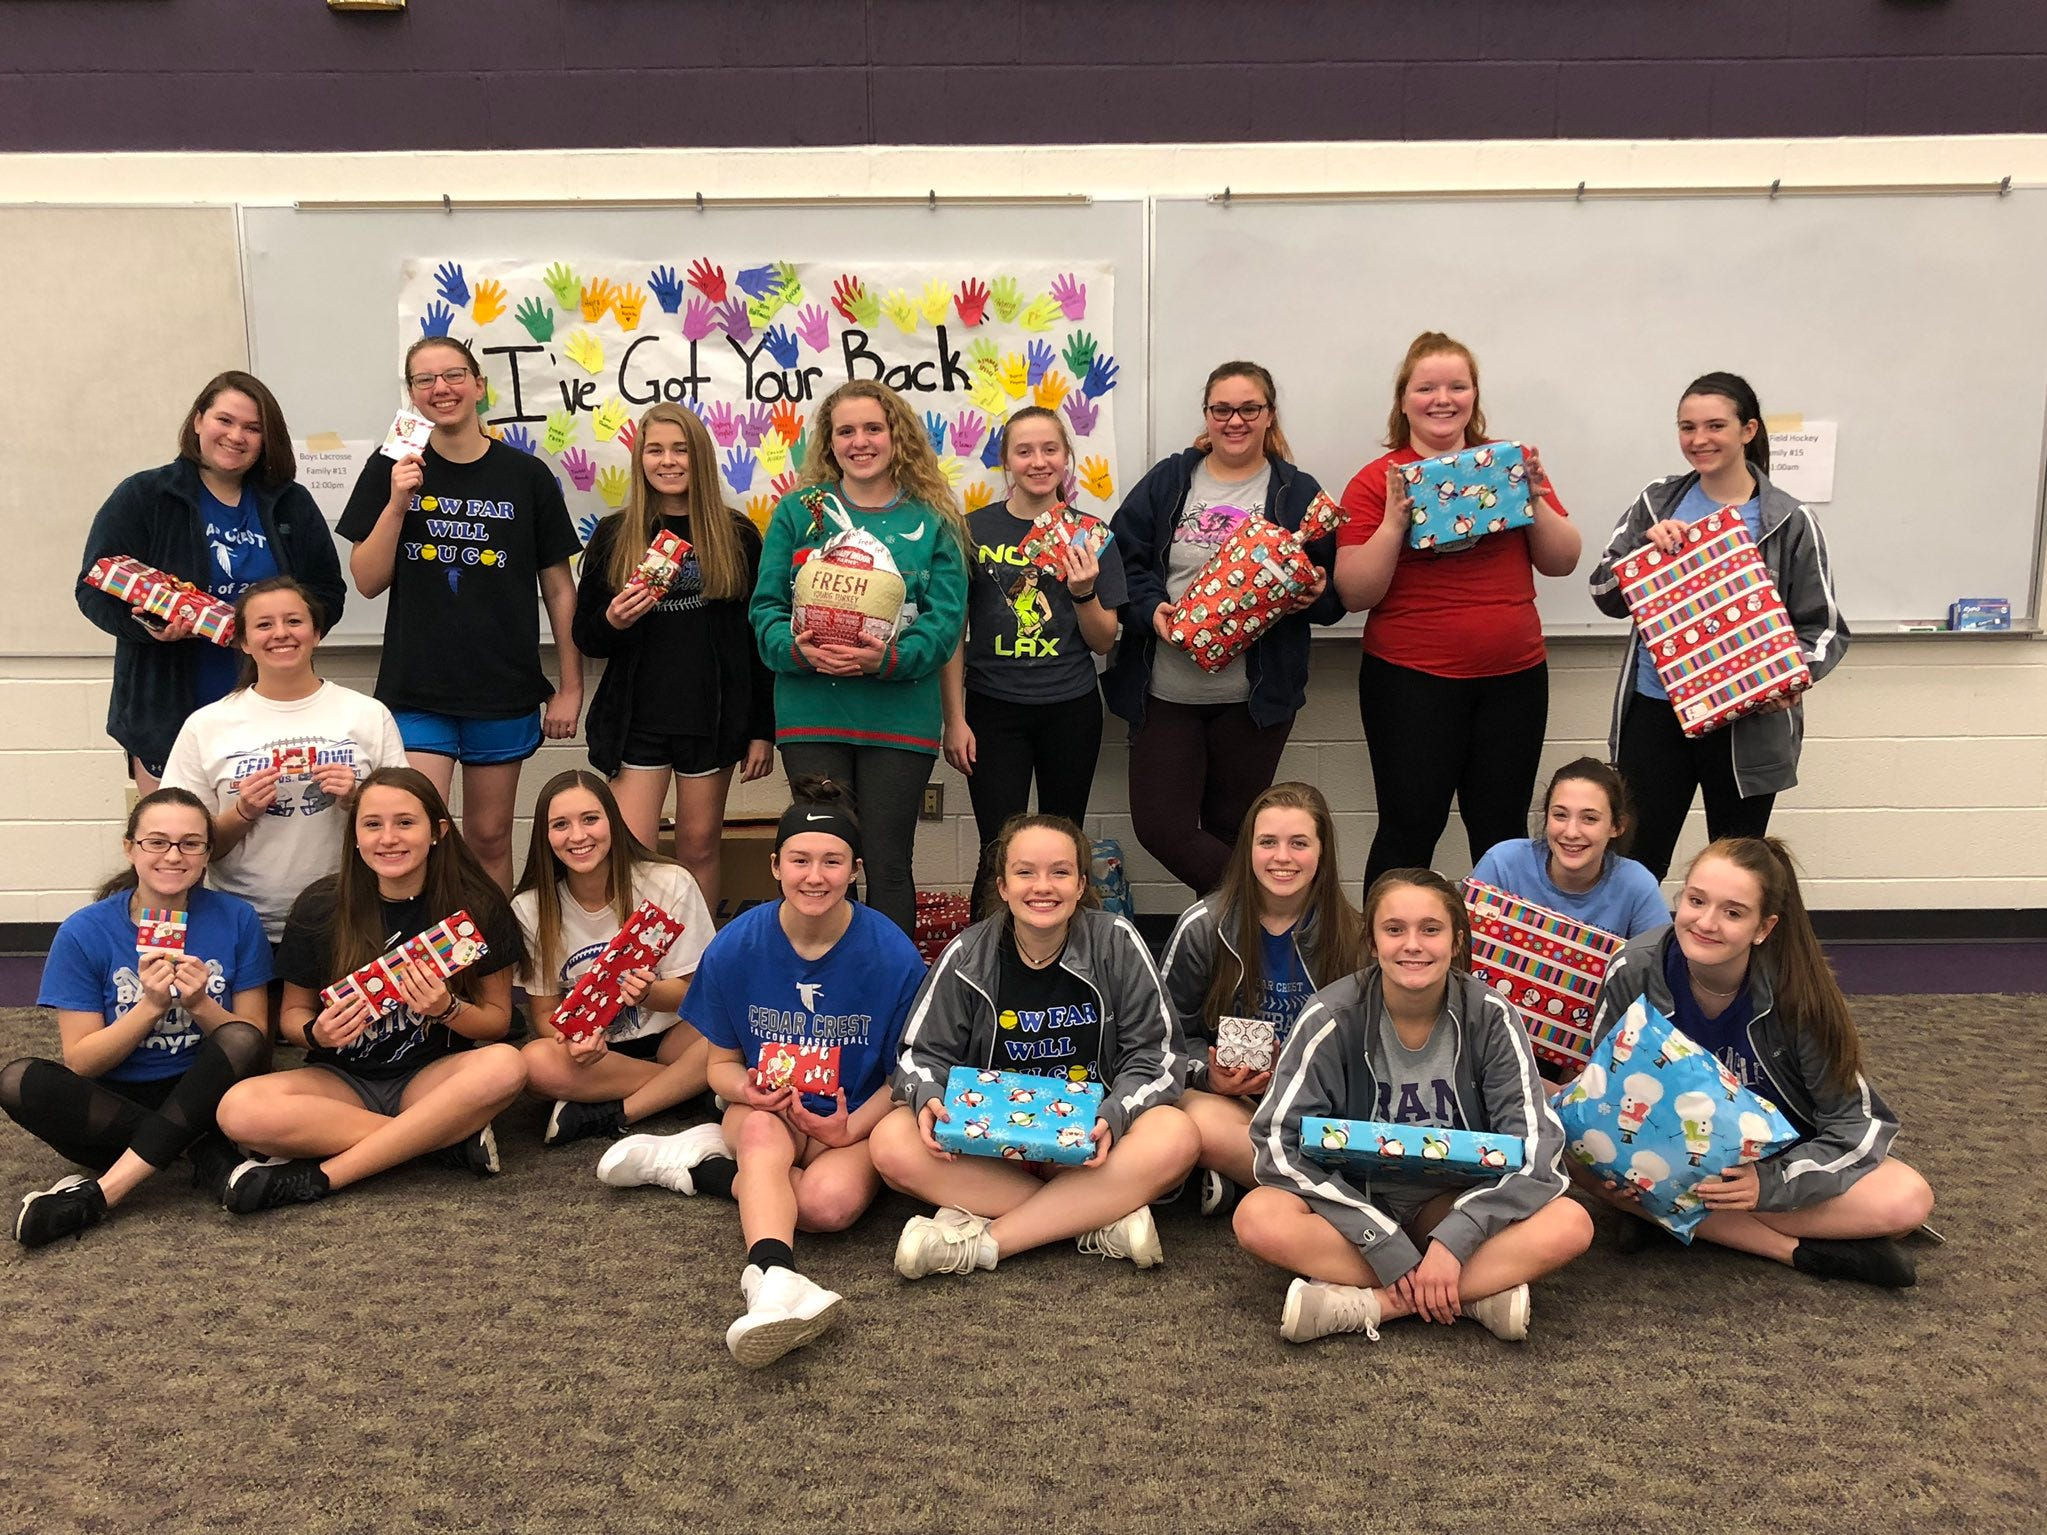 The Cedar Crest softball team was among several teams at Cedar Crest that participated in the Adopt-a-Family program.